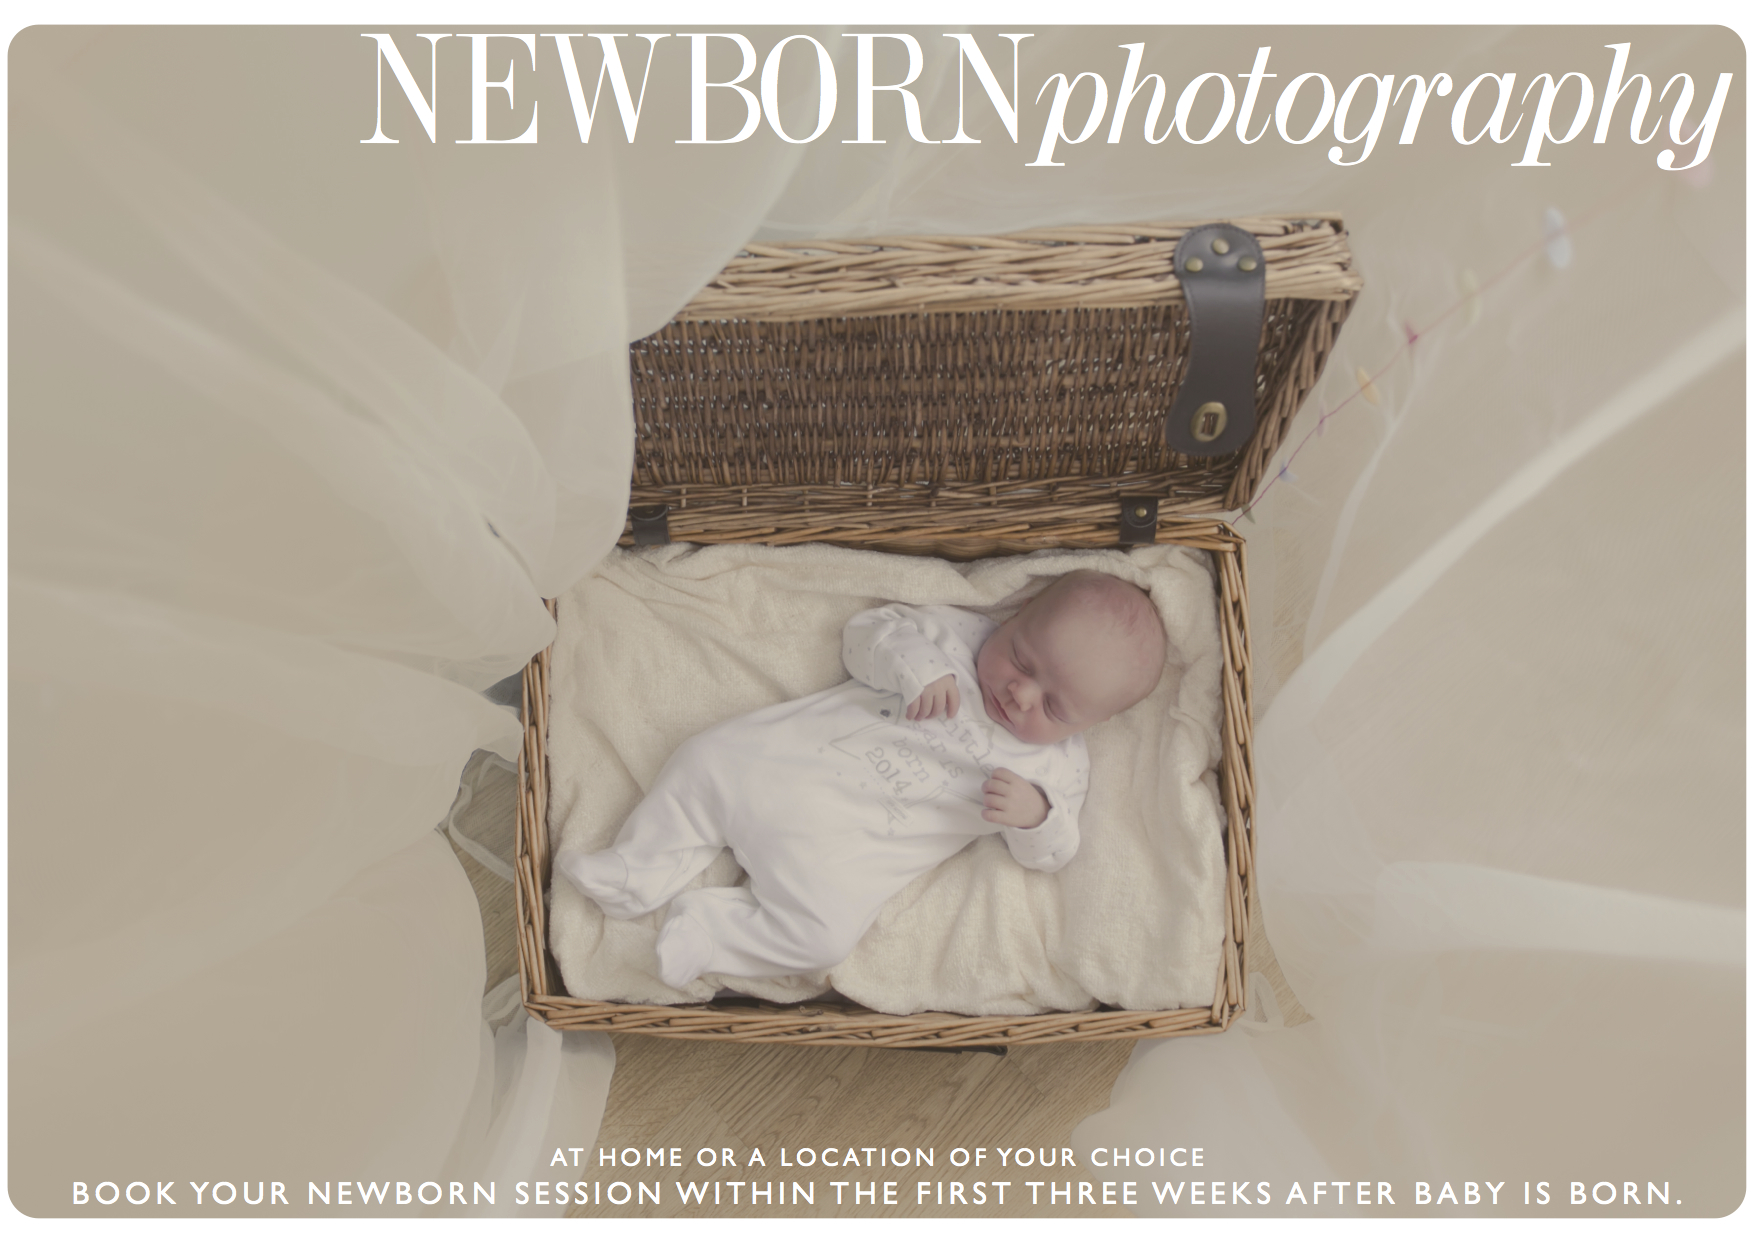 Newborn sessions - click the image above to view additional information.